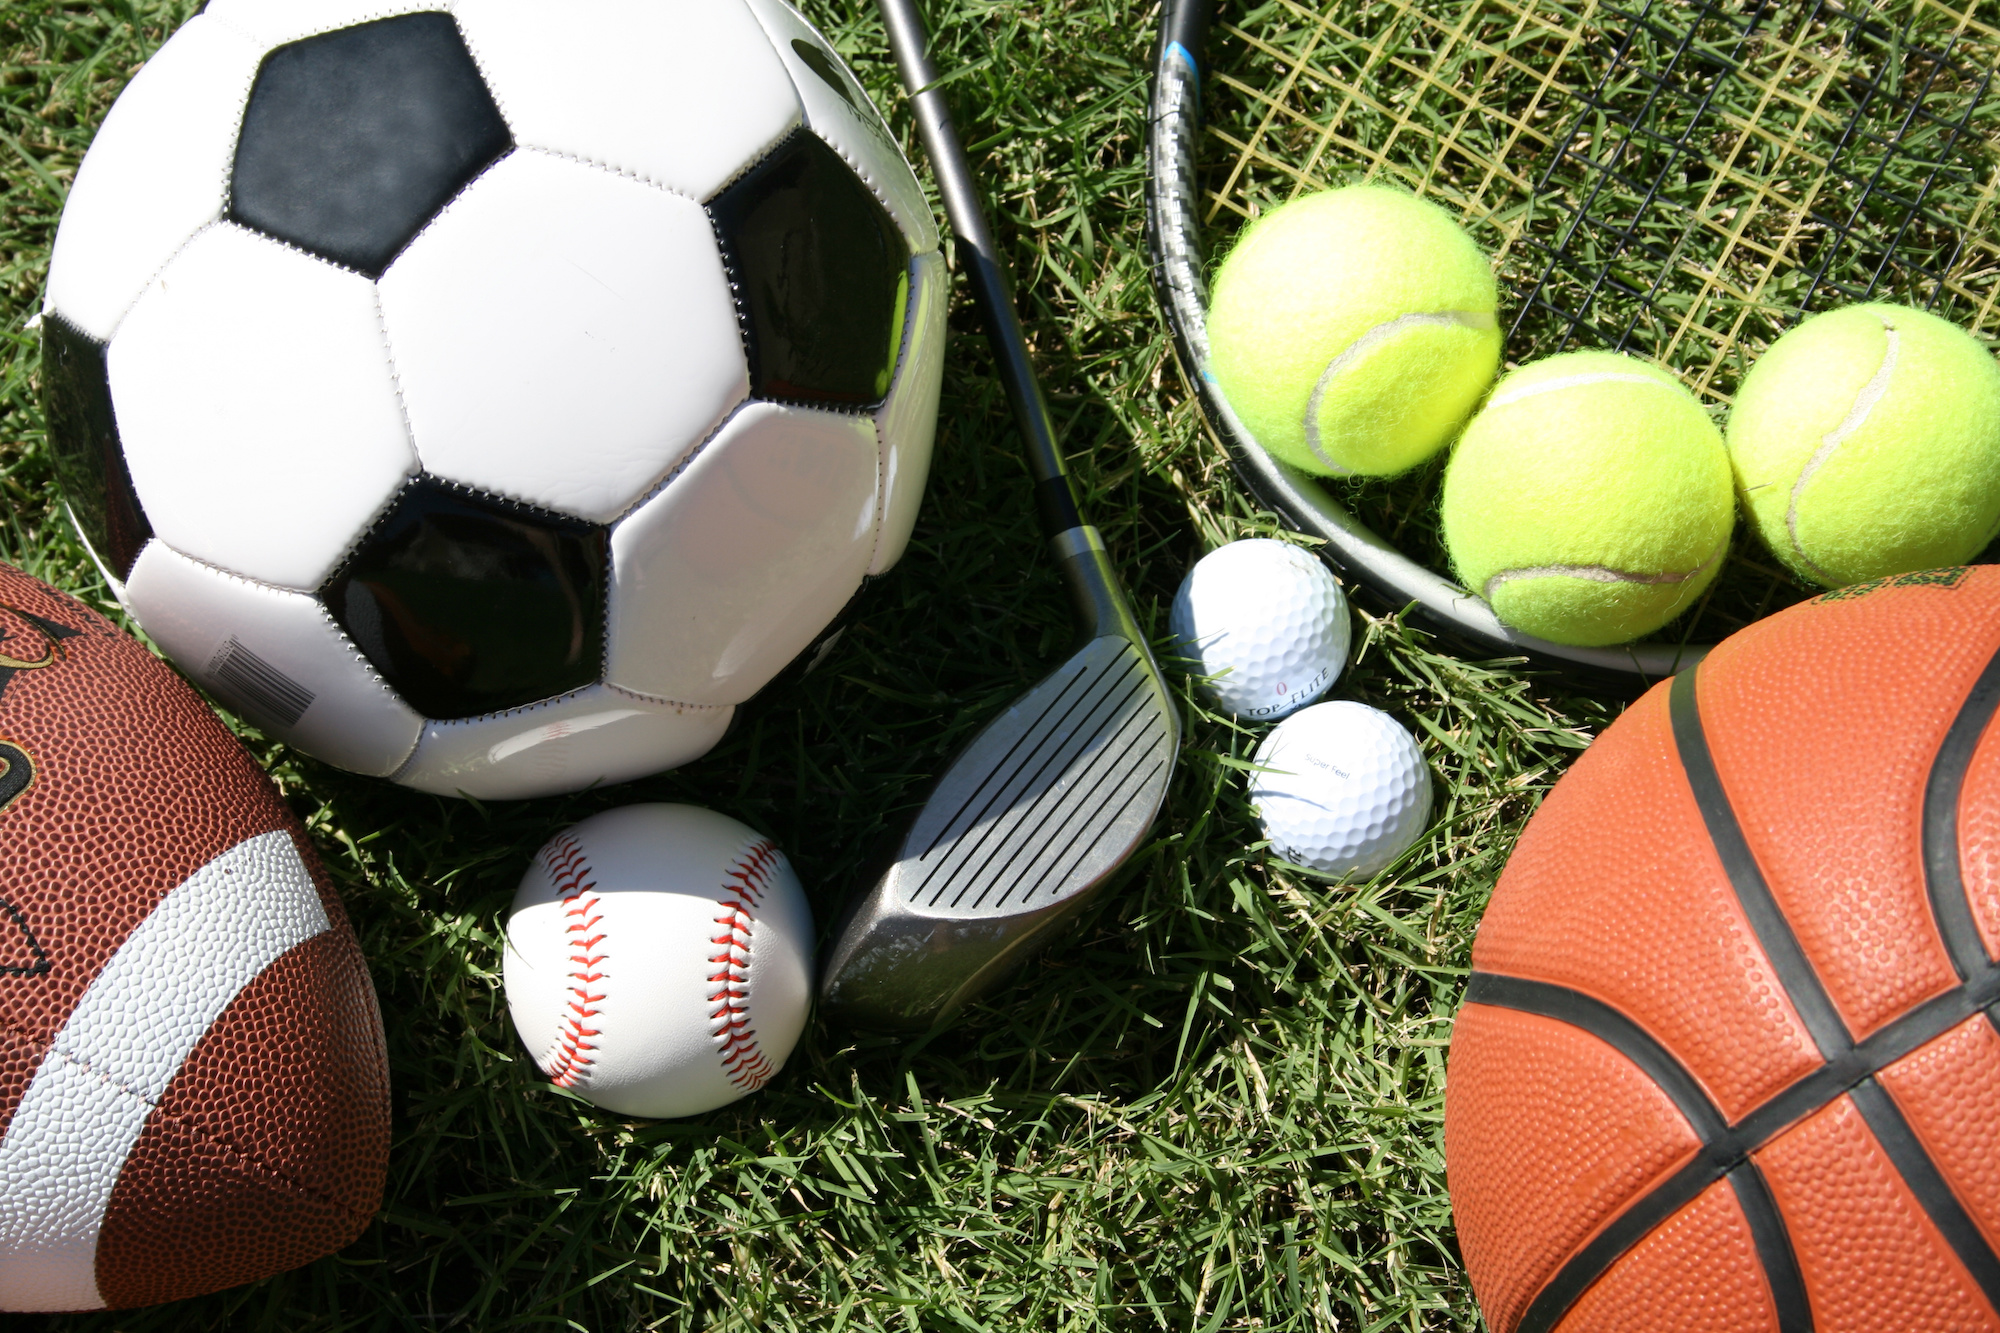 The System Categories - Sports Equipment